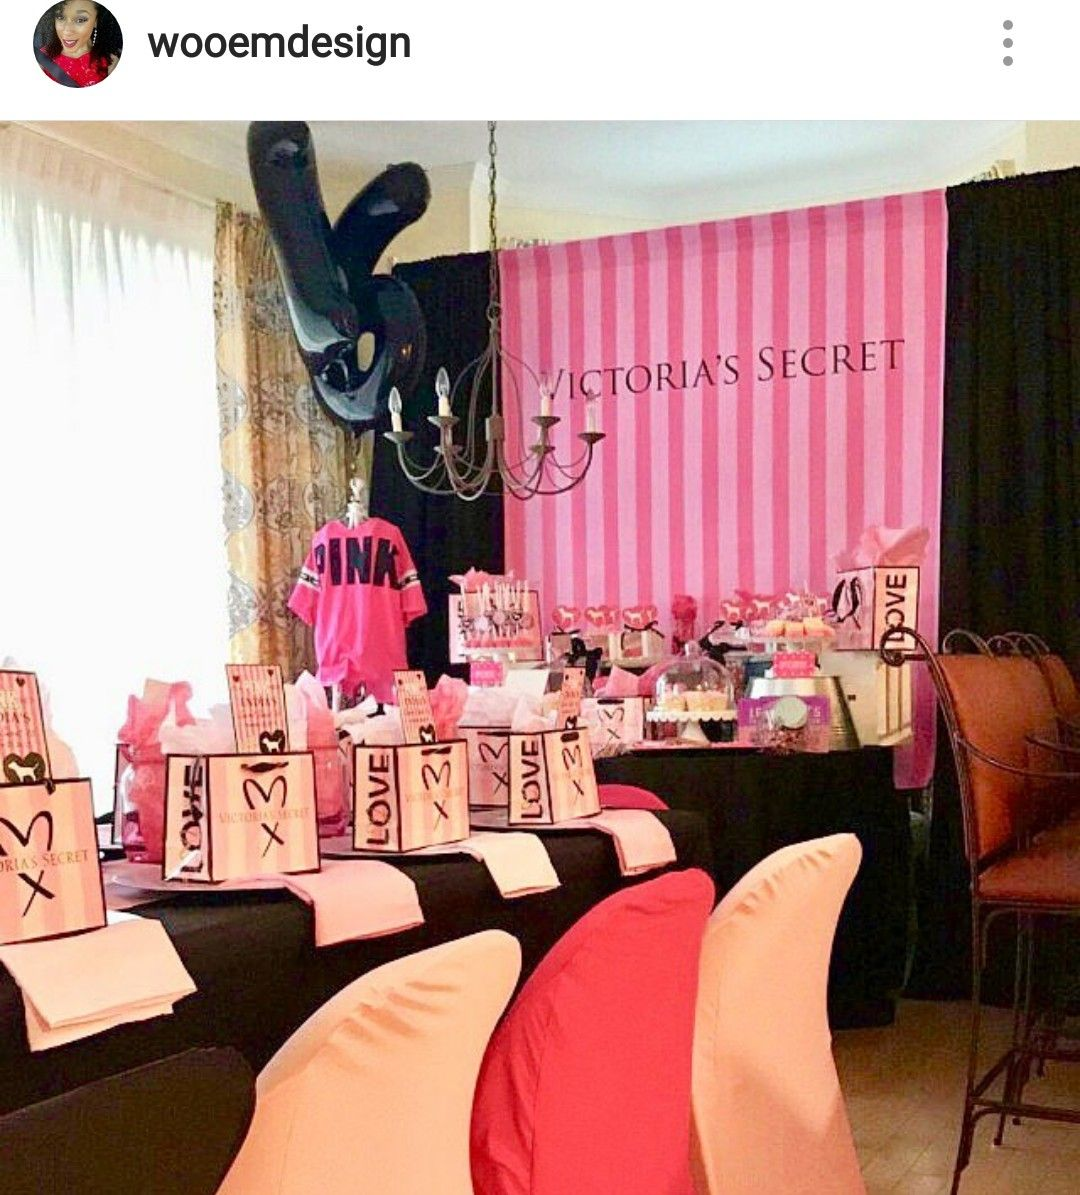 Victoria Secert Theme Party Pink Birthday Party Pink Party Theme Pink Birthday Party Decorations